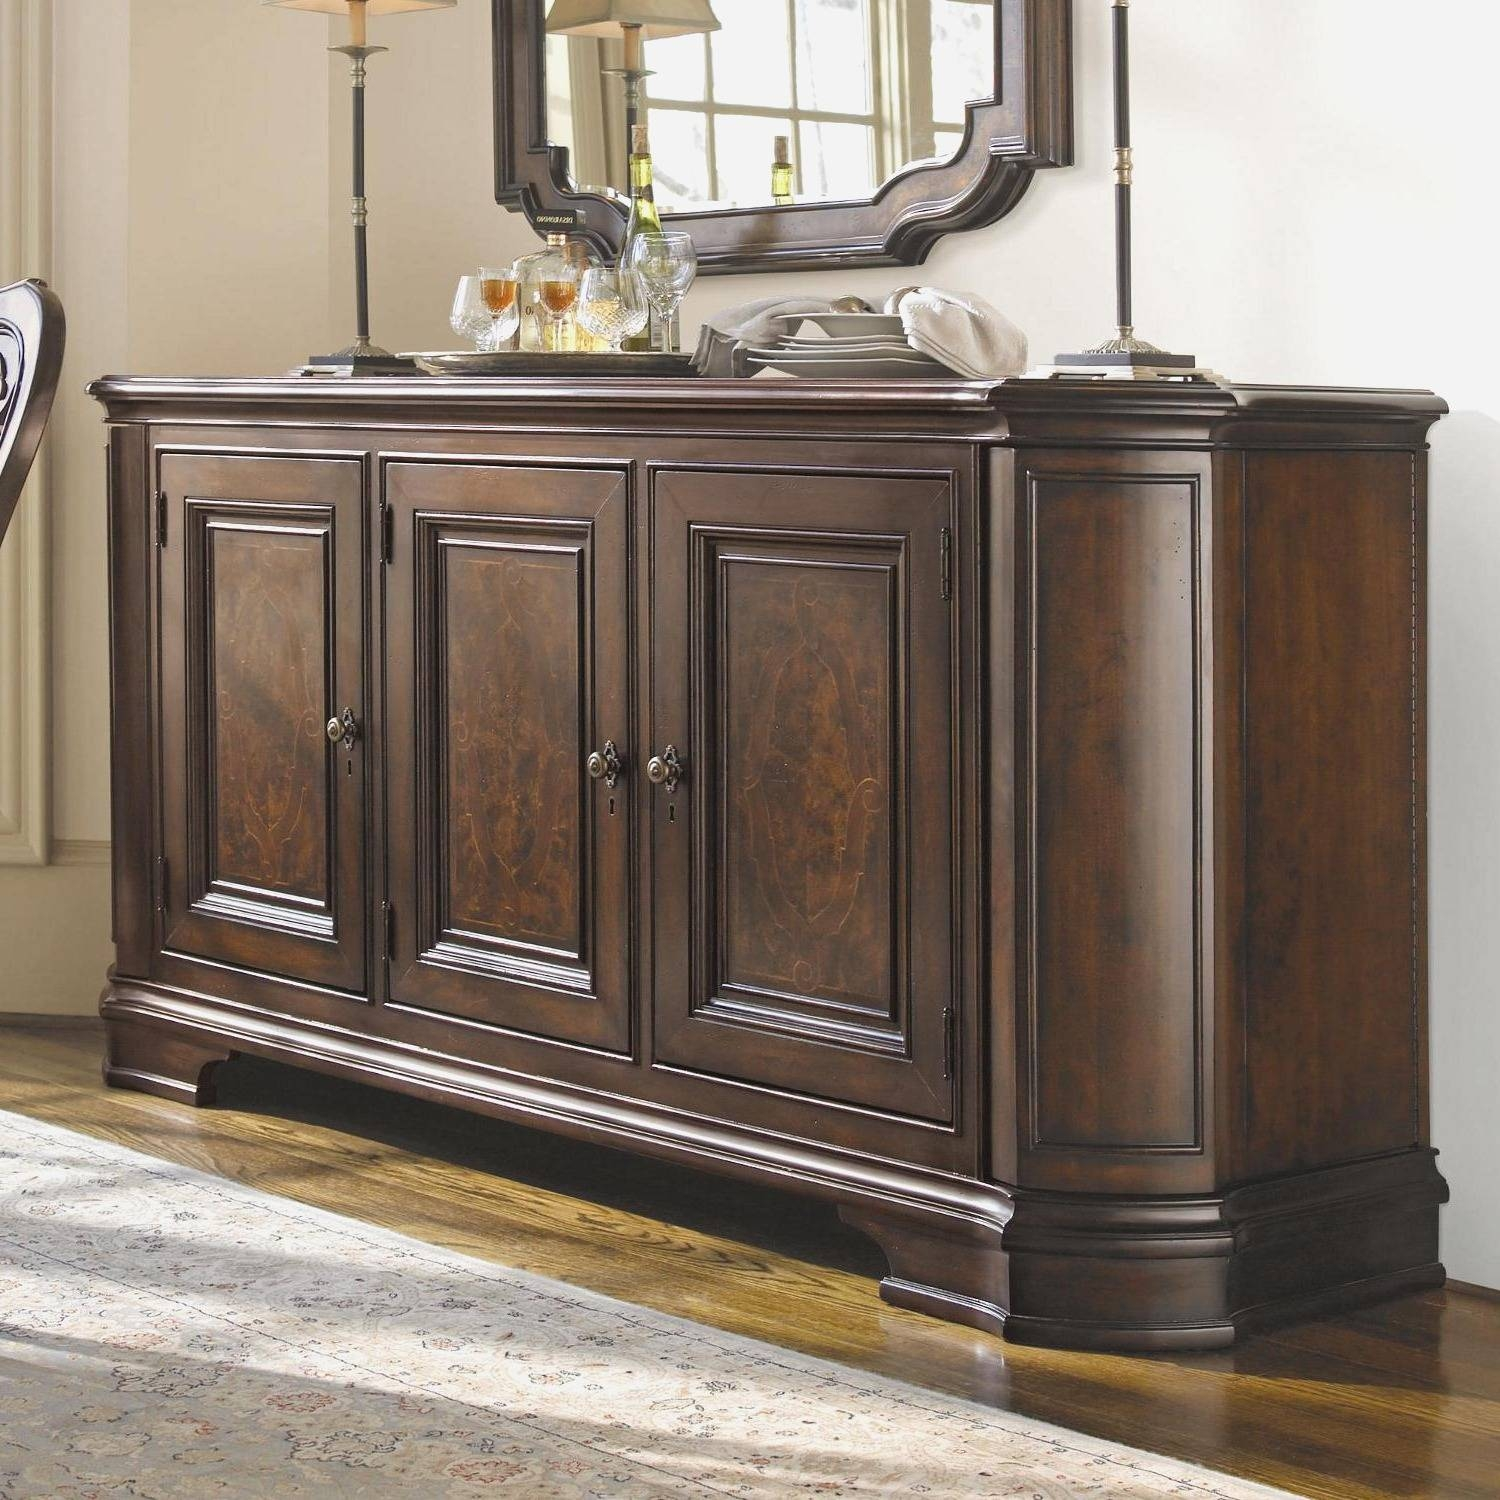 Large Buffets And Sideboards: Large Buffets And Sideboards Great With Sideboards And Cabinets (View 7 of 15)